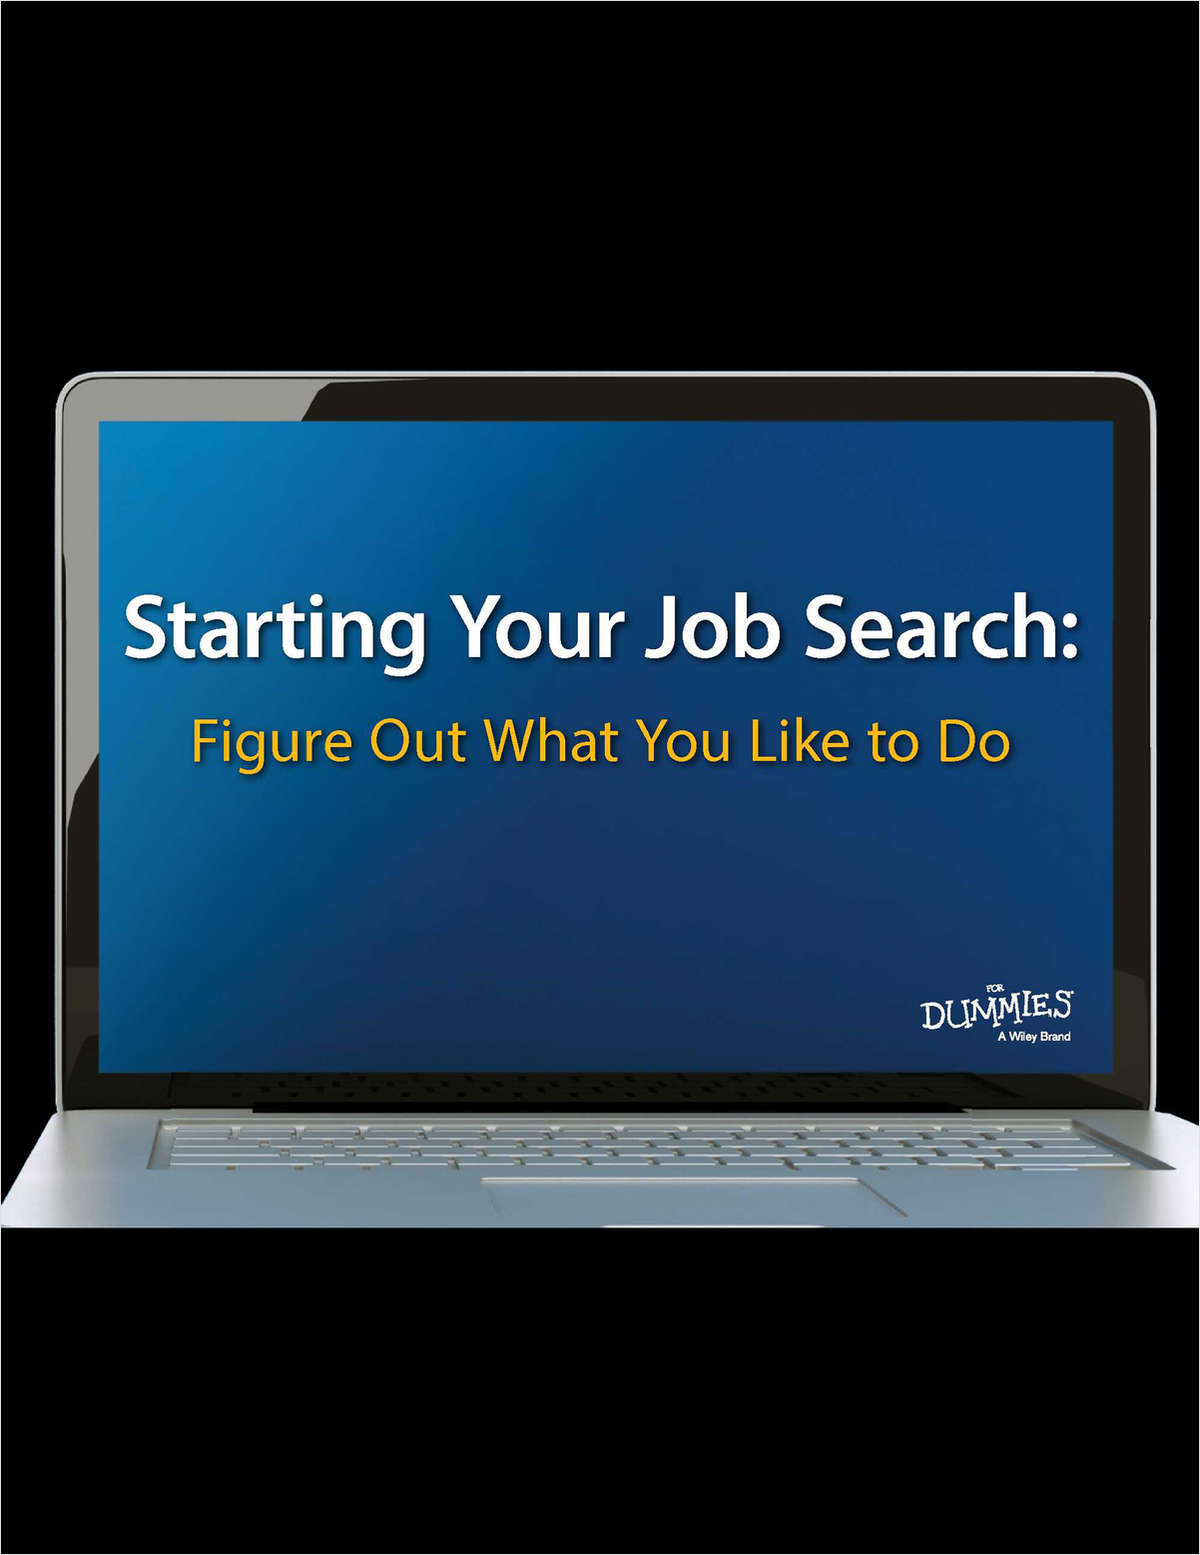 Starting Your Job Search Figure Out What You Like To Do